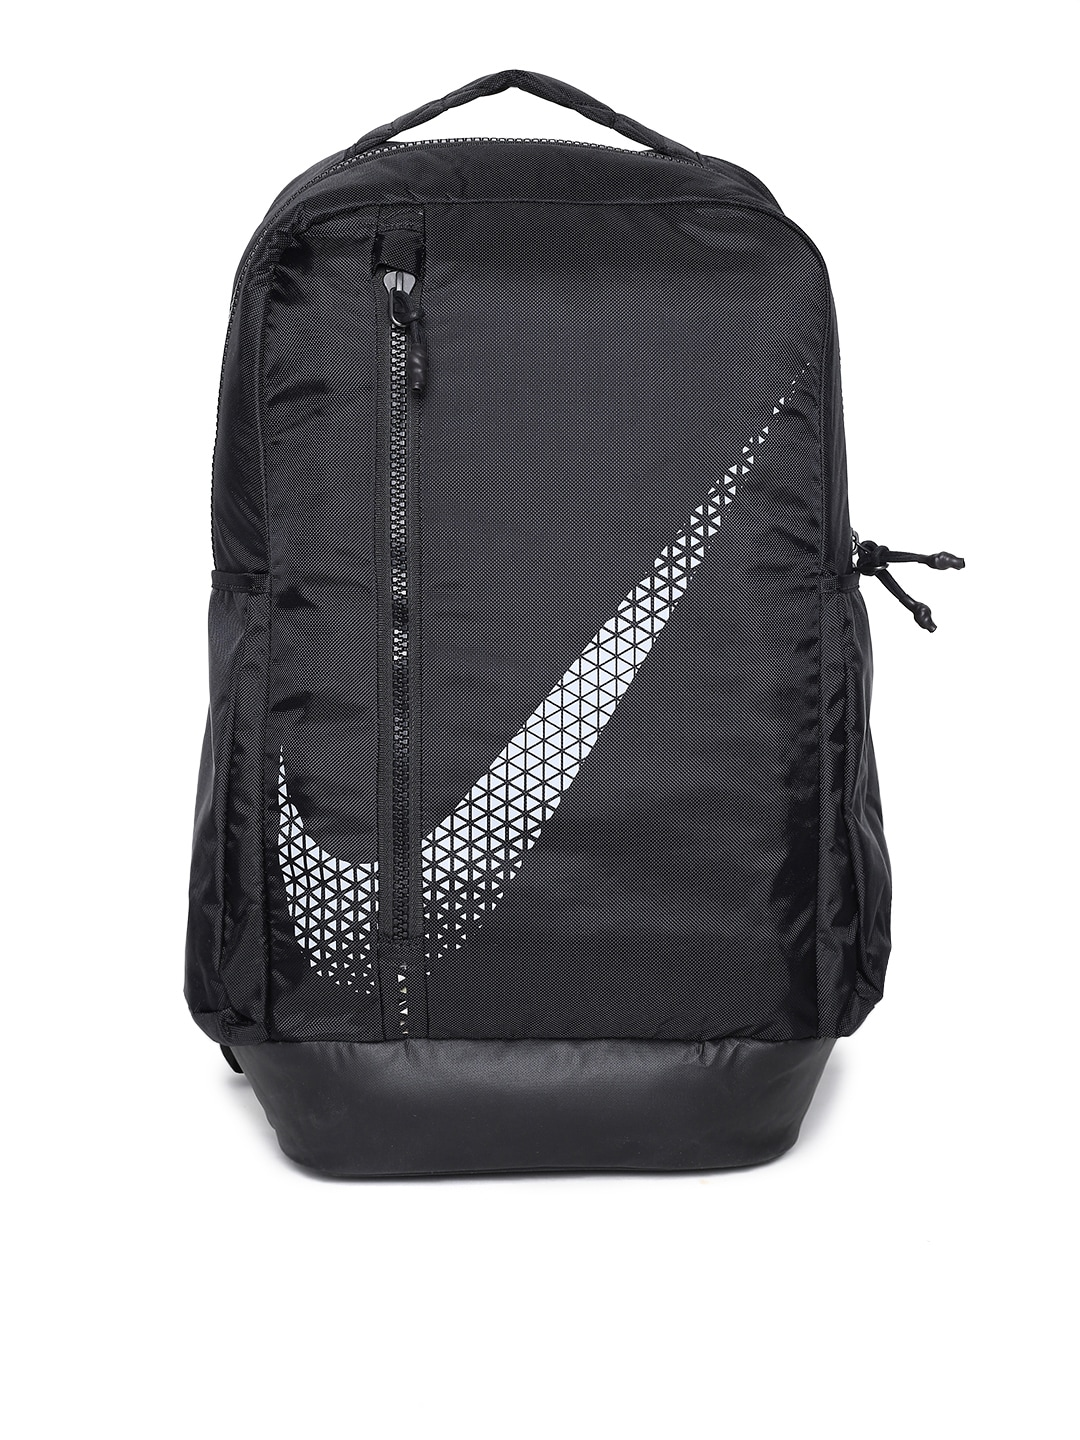 c6271513cd Nike Backpacks - Buy Original Nike Backpacks Online from Myntra